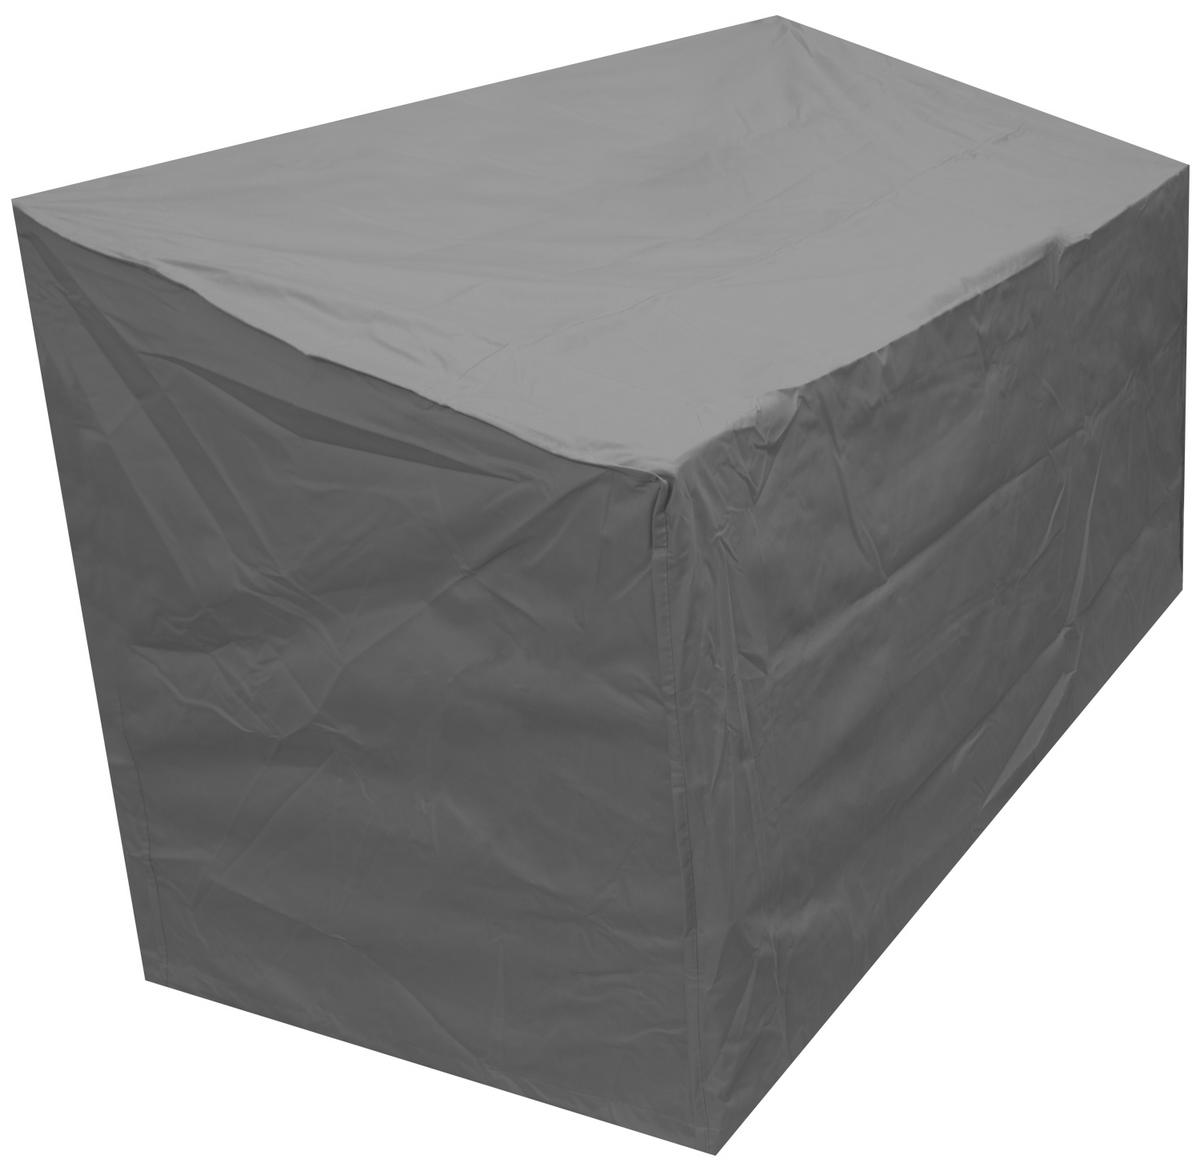 Oxbridge Medium (3 Seater) Bench Cover GREY